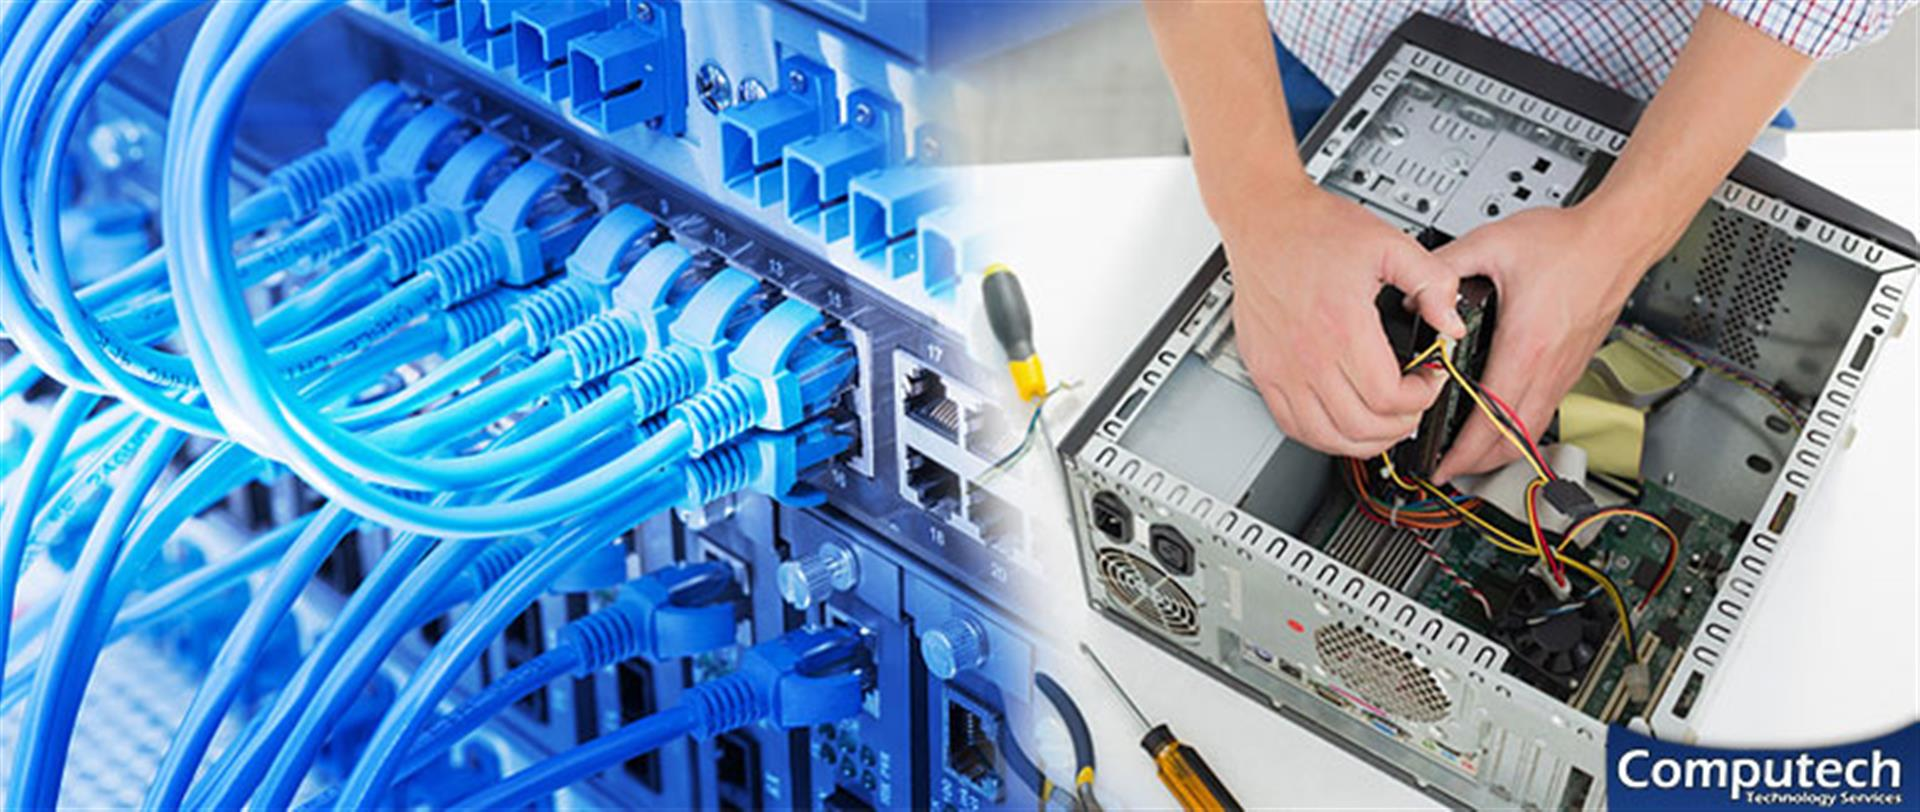 Suwanee Georgia On Site Computer & Printer Repair, Networking, Voice & Data Cabling Services